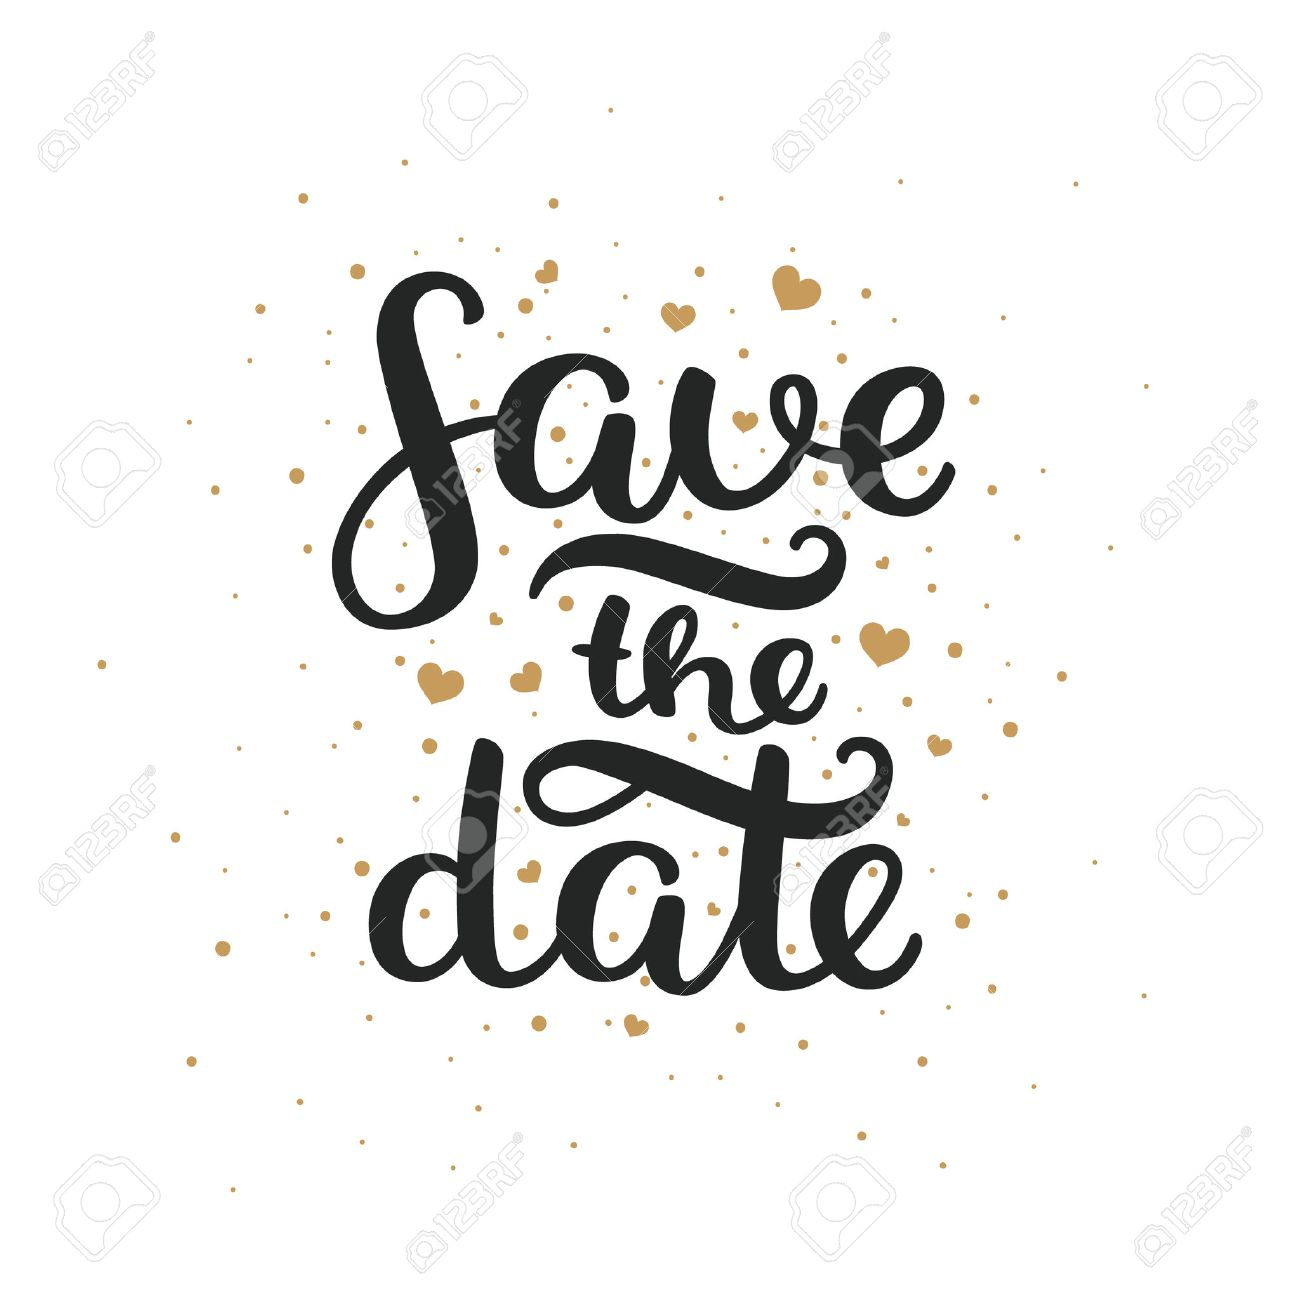 Save the date, hand drawn lettering and gold hearts for design wedding invitation, photo overlays, scrapbook and save the date cards - 51082380